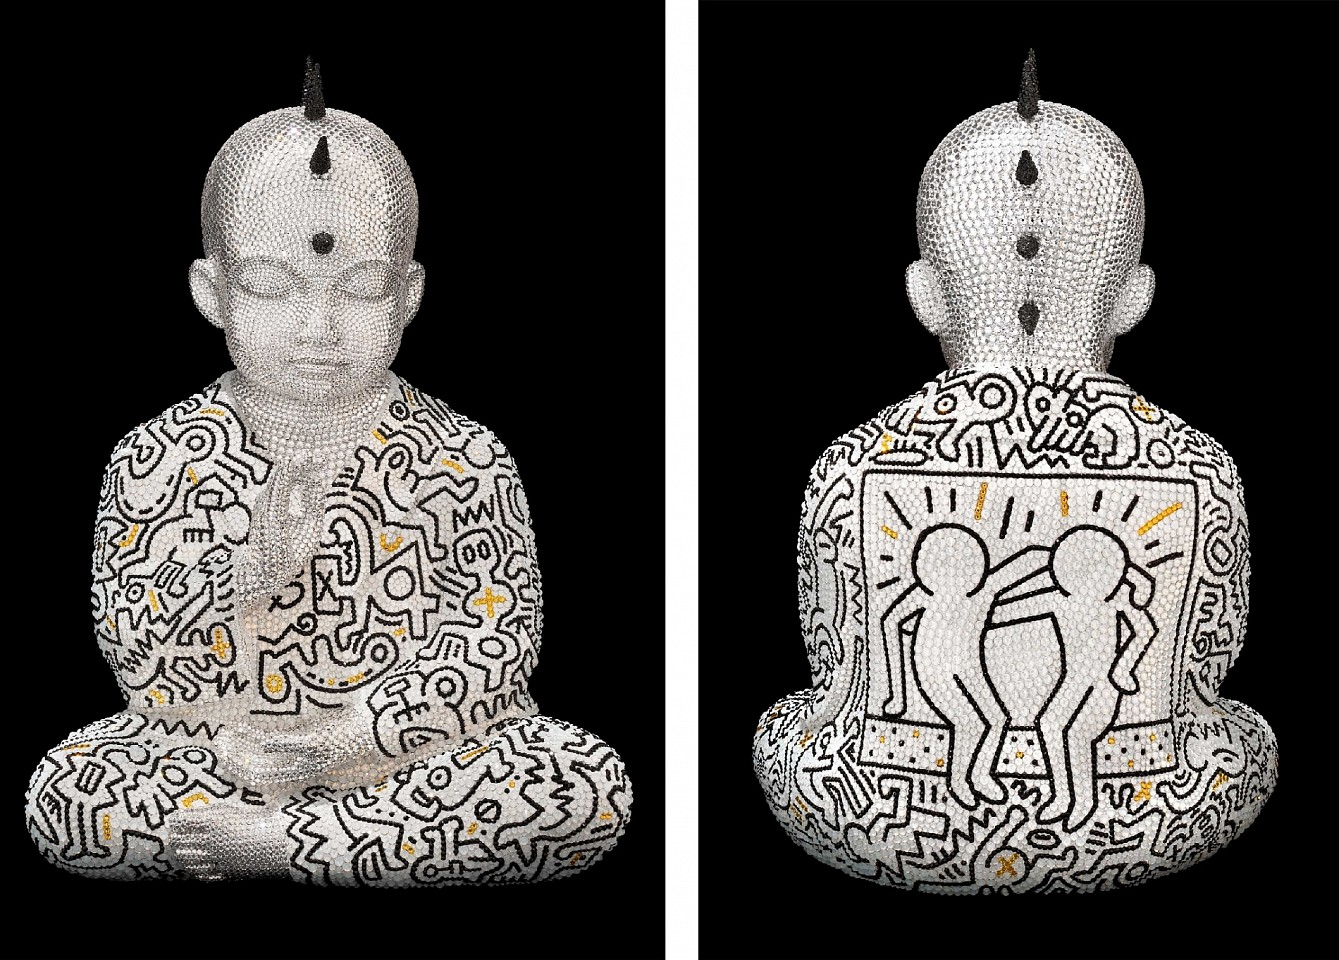 Metis Atash ,   Z PUNKBUDDHA BEGINNERS HEART feat. HARING  ,  2018     Resin, acrylic paint and 28,000 Swarovski crystals ,  17 1/2 x 12 x 9 in. (44.5 x 30.5 x 22.9 cm)     ATAS00086